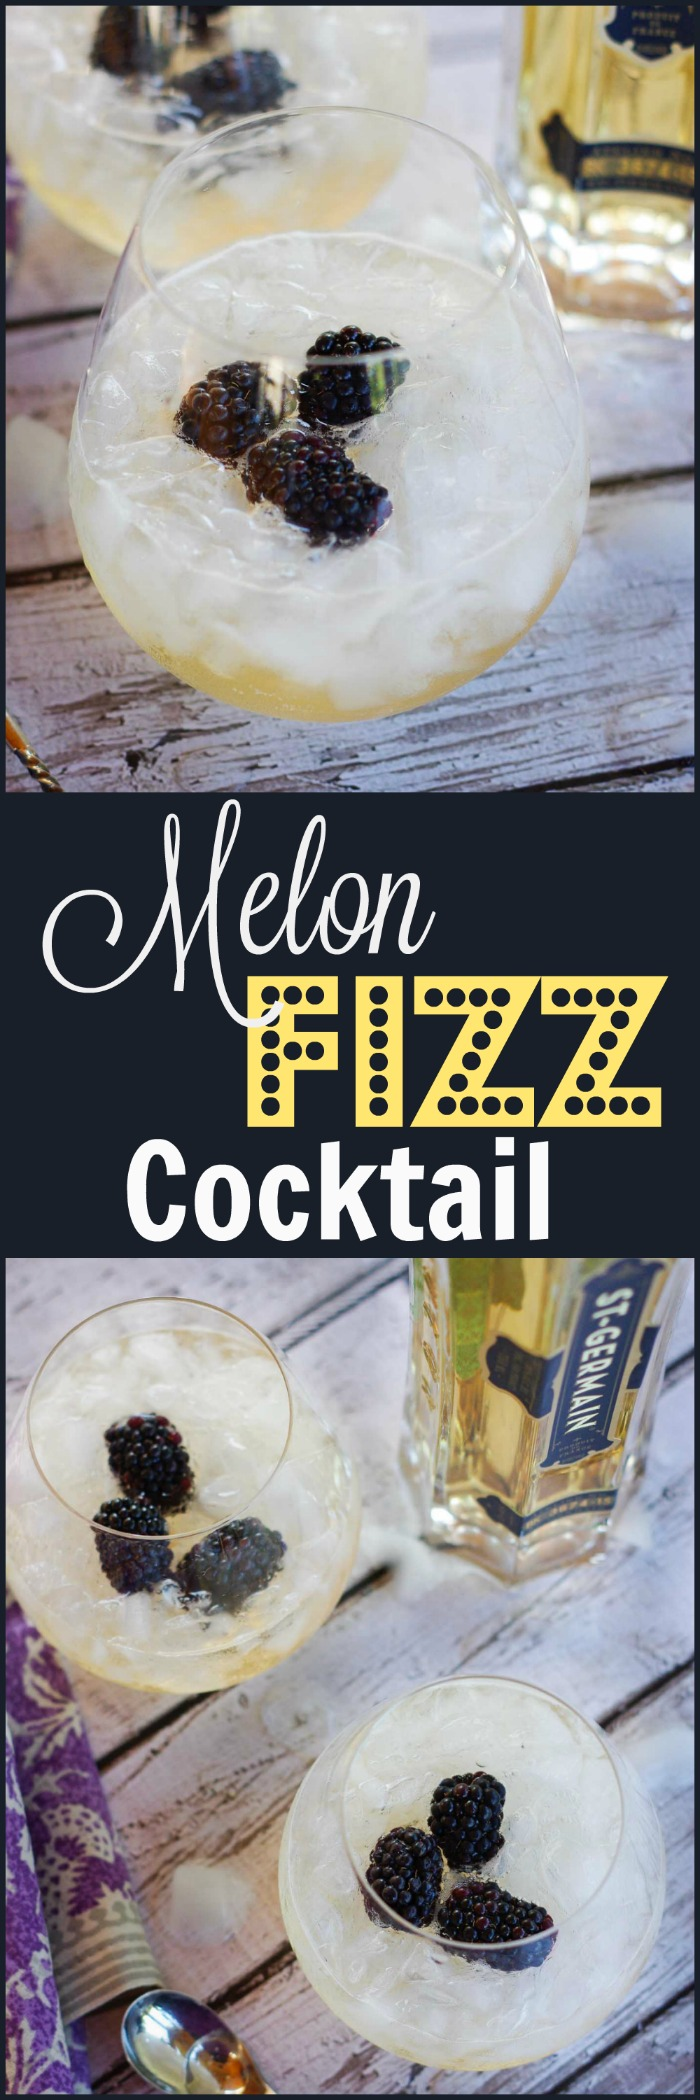 Melon Fizz Cocktail | www.homeandplate.come | Hints of sweet melon flavored vodka swirled togetherness with fizzy ginger ale in a glass of crushed ice makes the perfect summer cocktail.